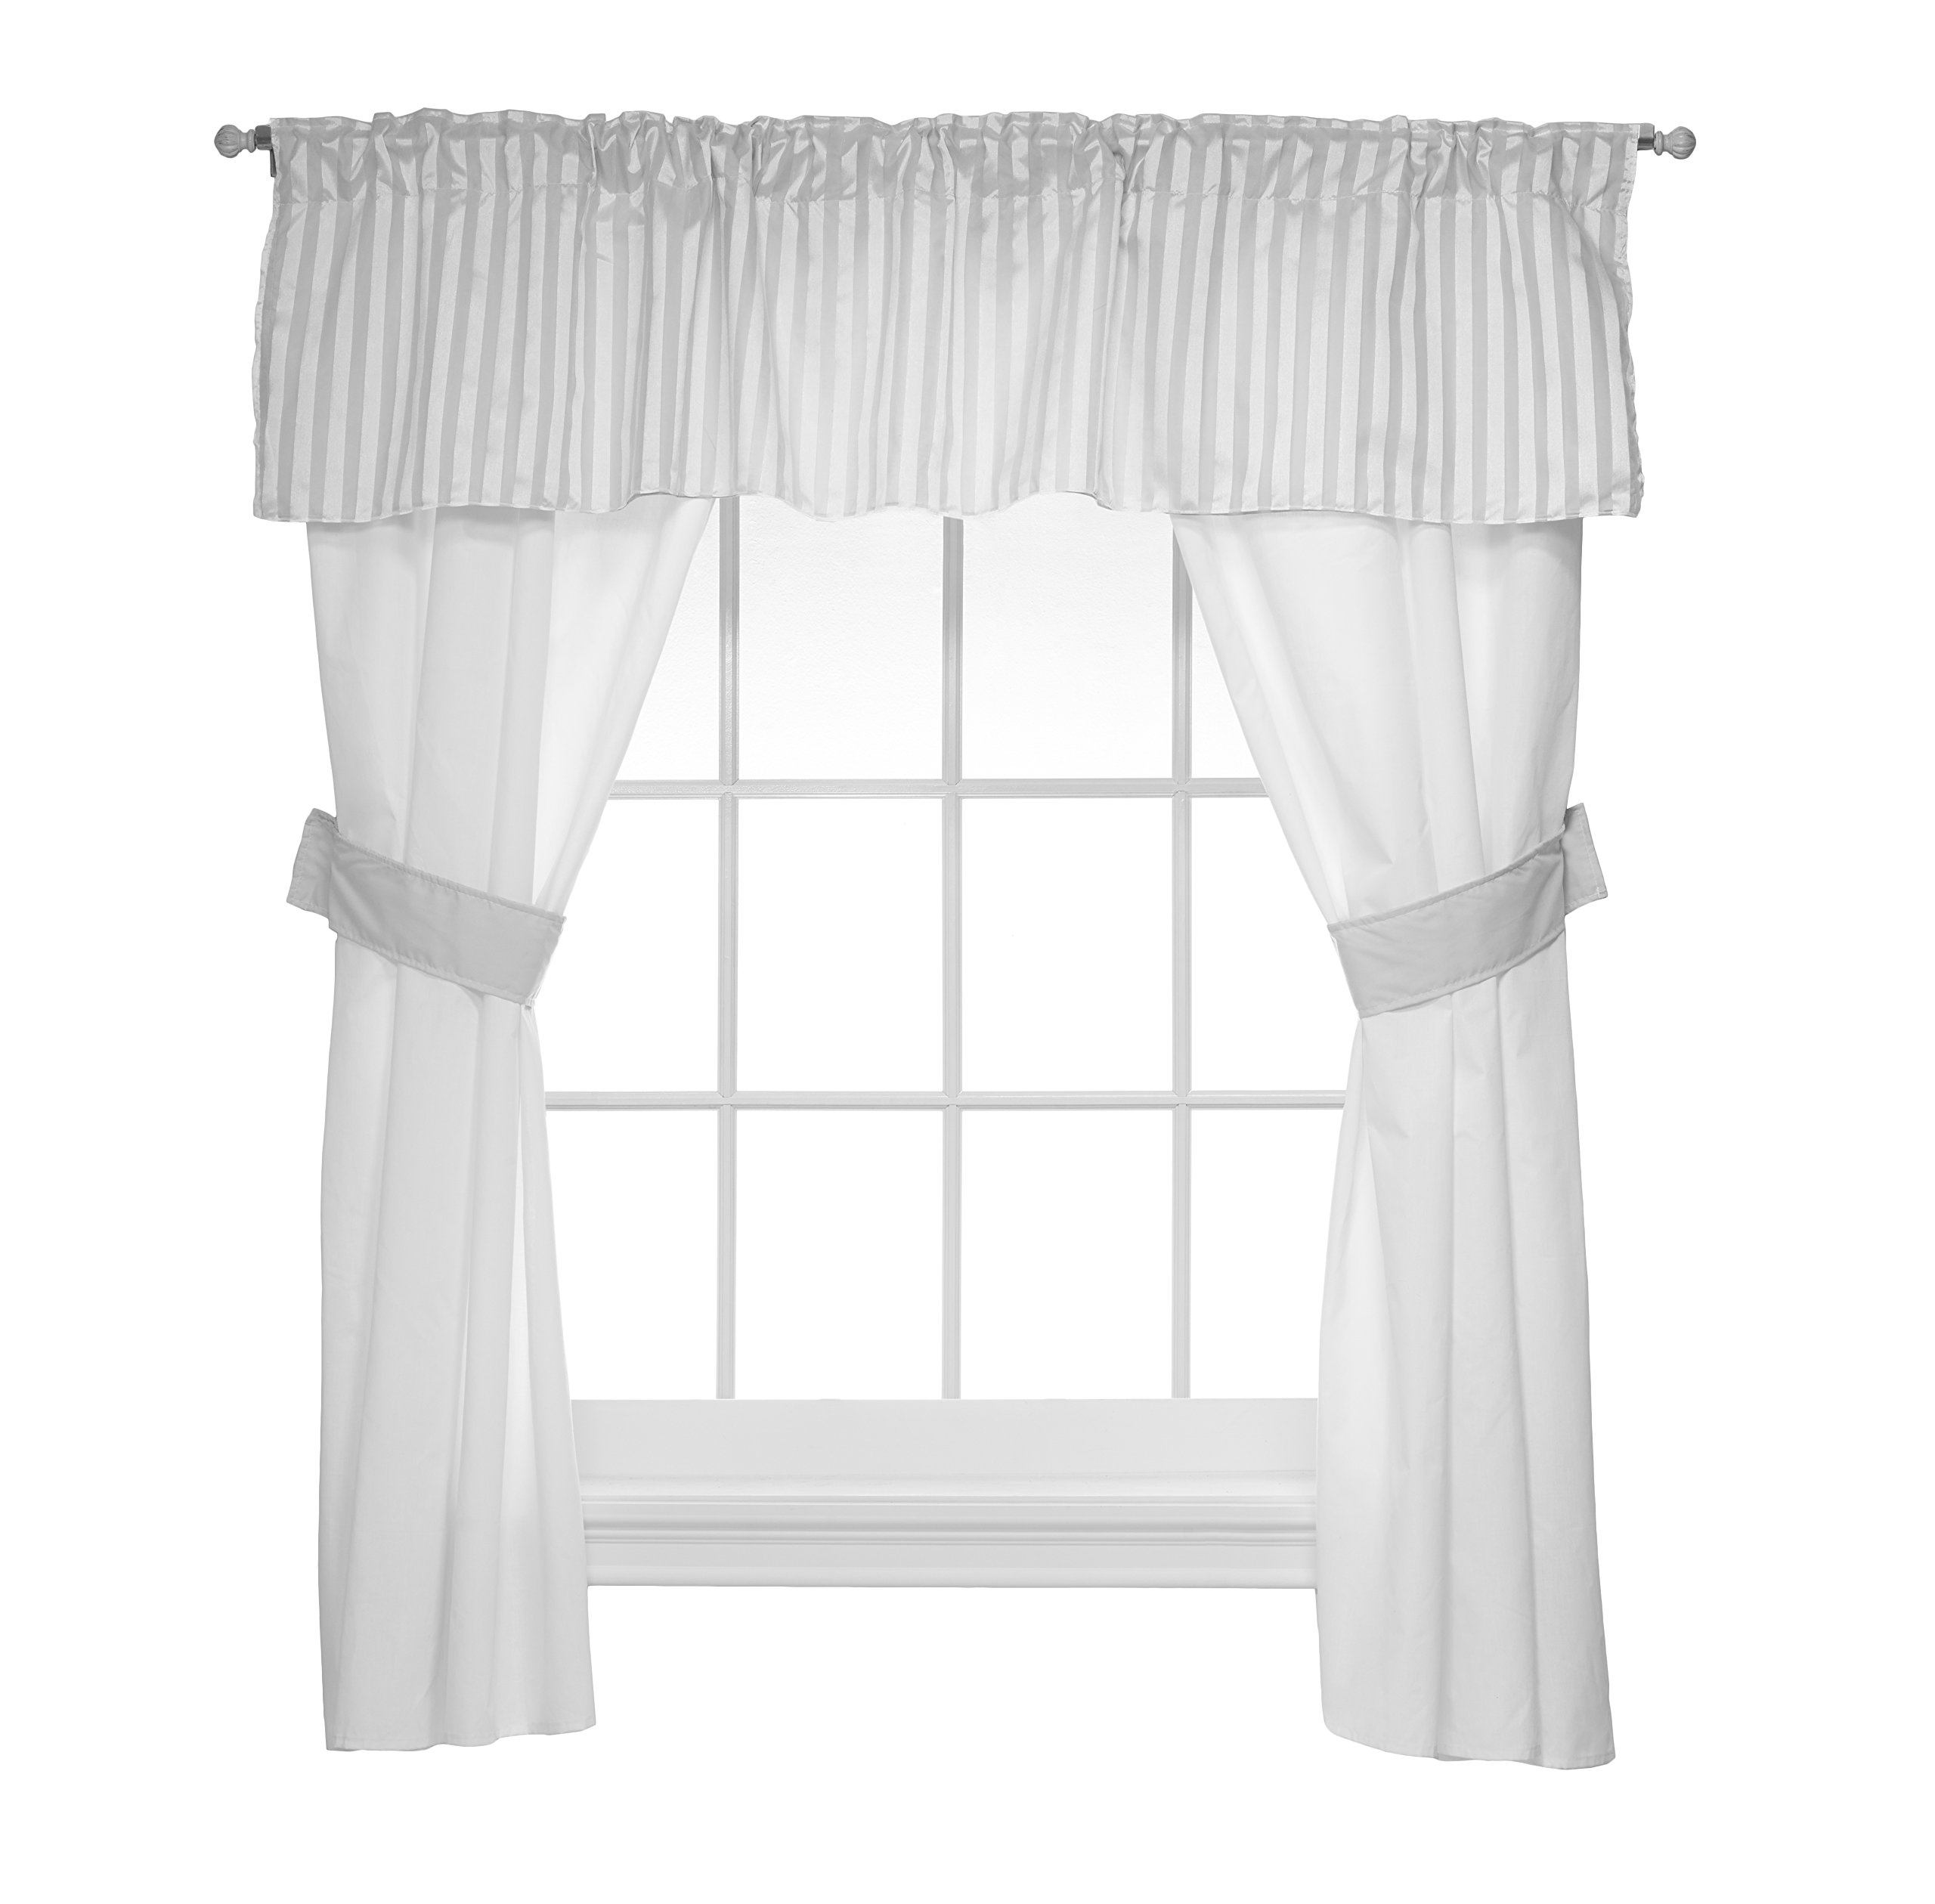 Baby Doll Candyland 5 Piece Window Valance and Curtain Set, Grey by Baby Doll